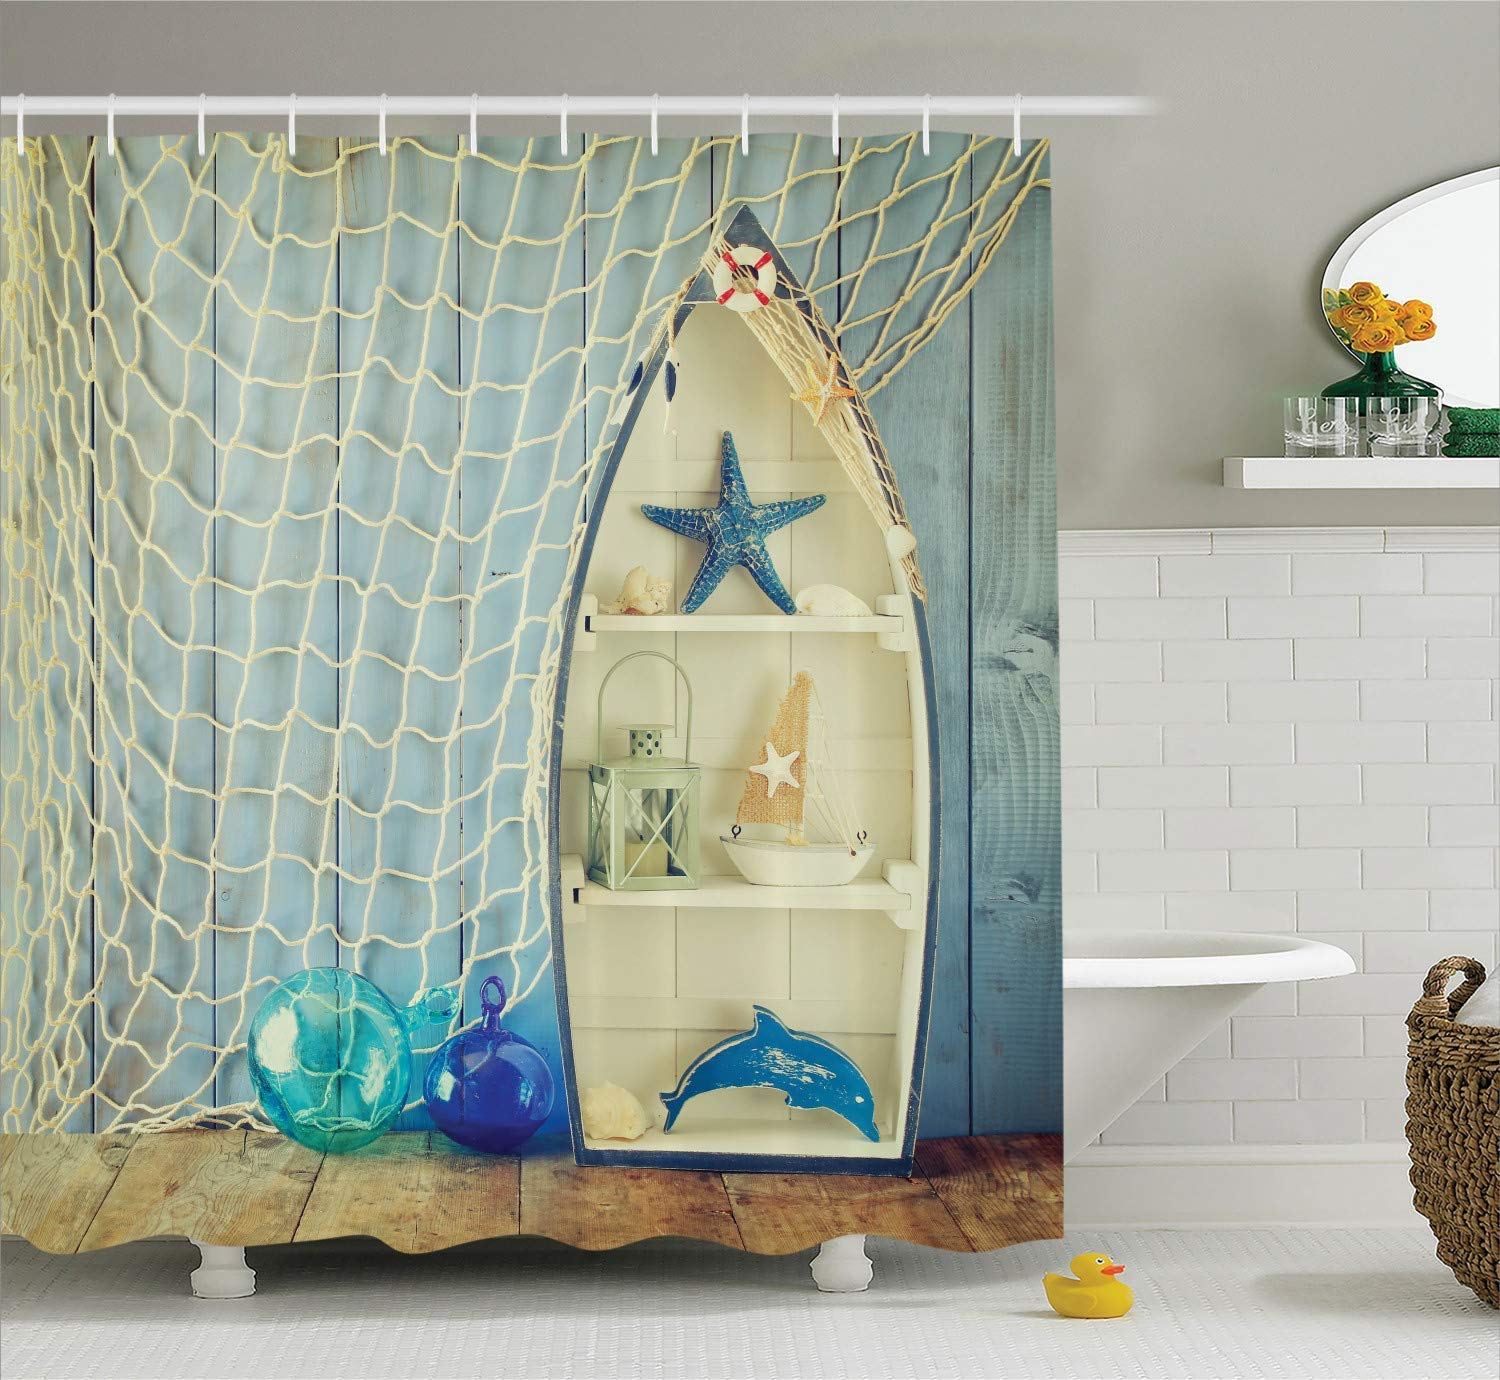 DIY Blue Shower Curtain Nautical Decor, Boat Standing Against The Wall with Other Aquatic Objects Bathroom Curtains Blue Sea Maritime Theme Picture, 72 x 84 Inches Blue Beige